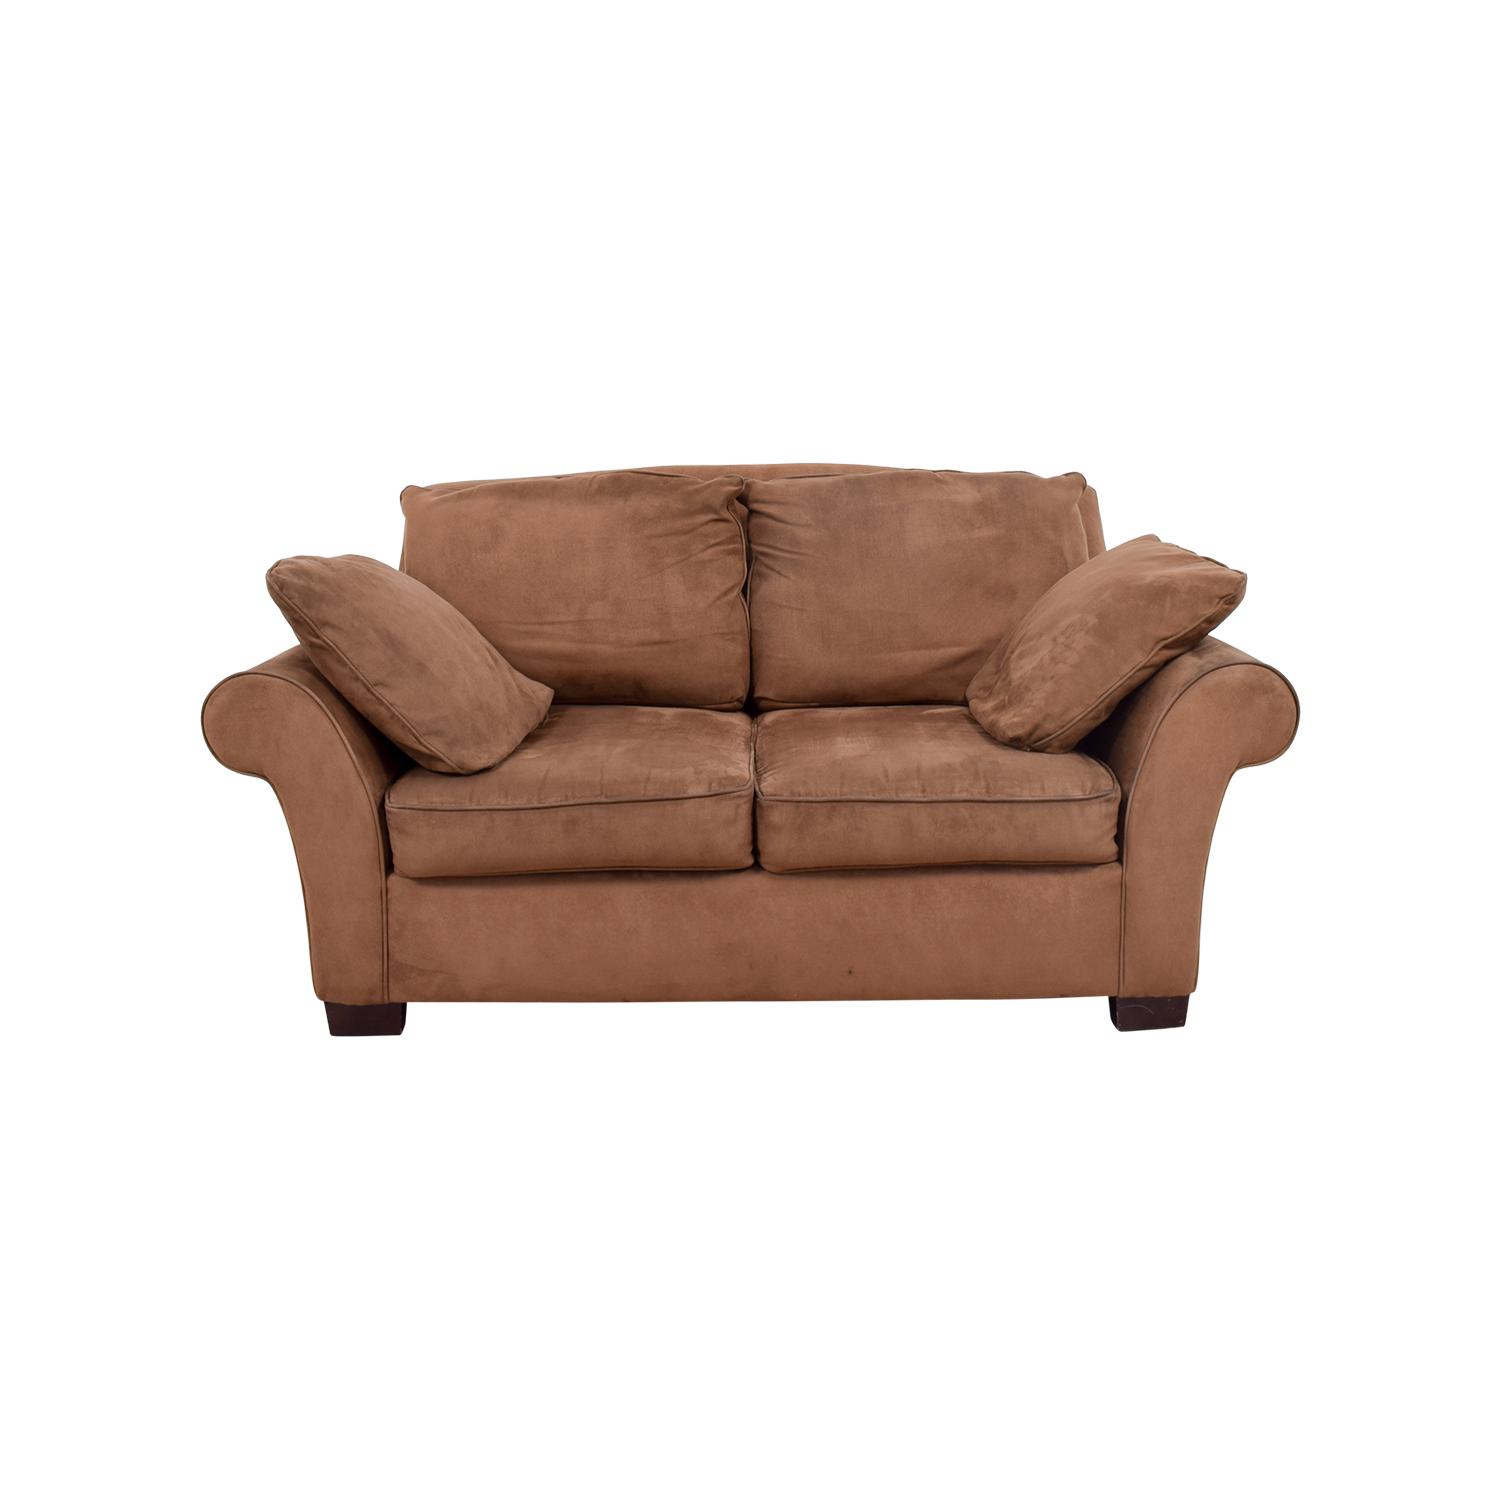 Brown Curved Arm Loveseat / Loveseats